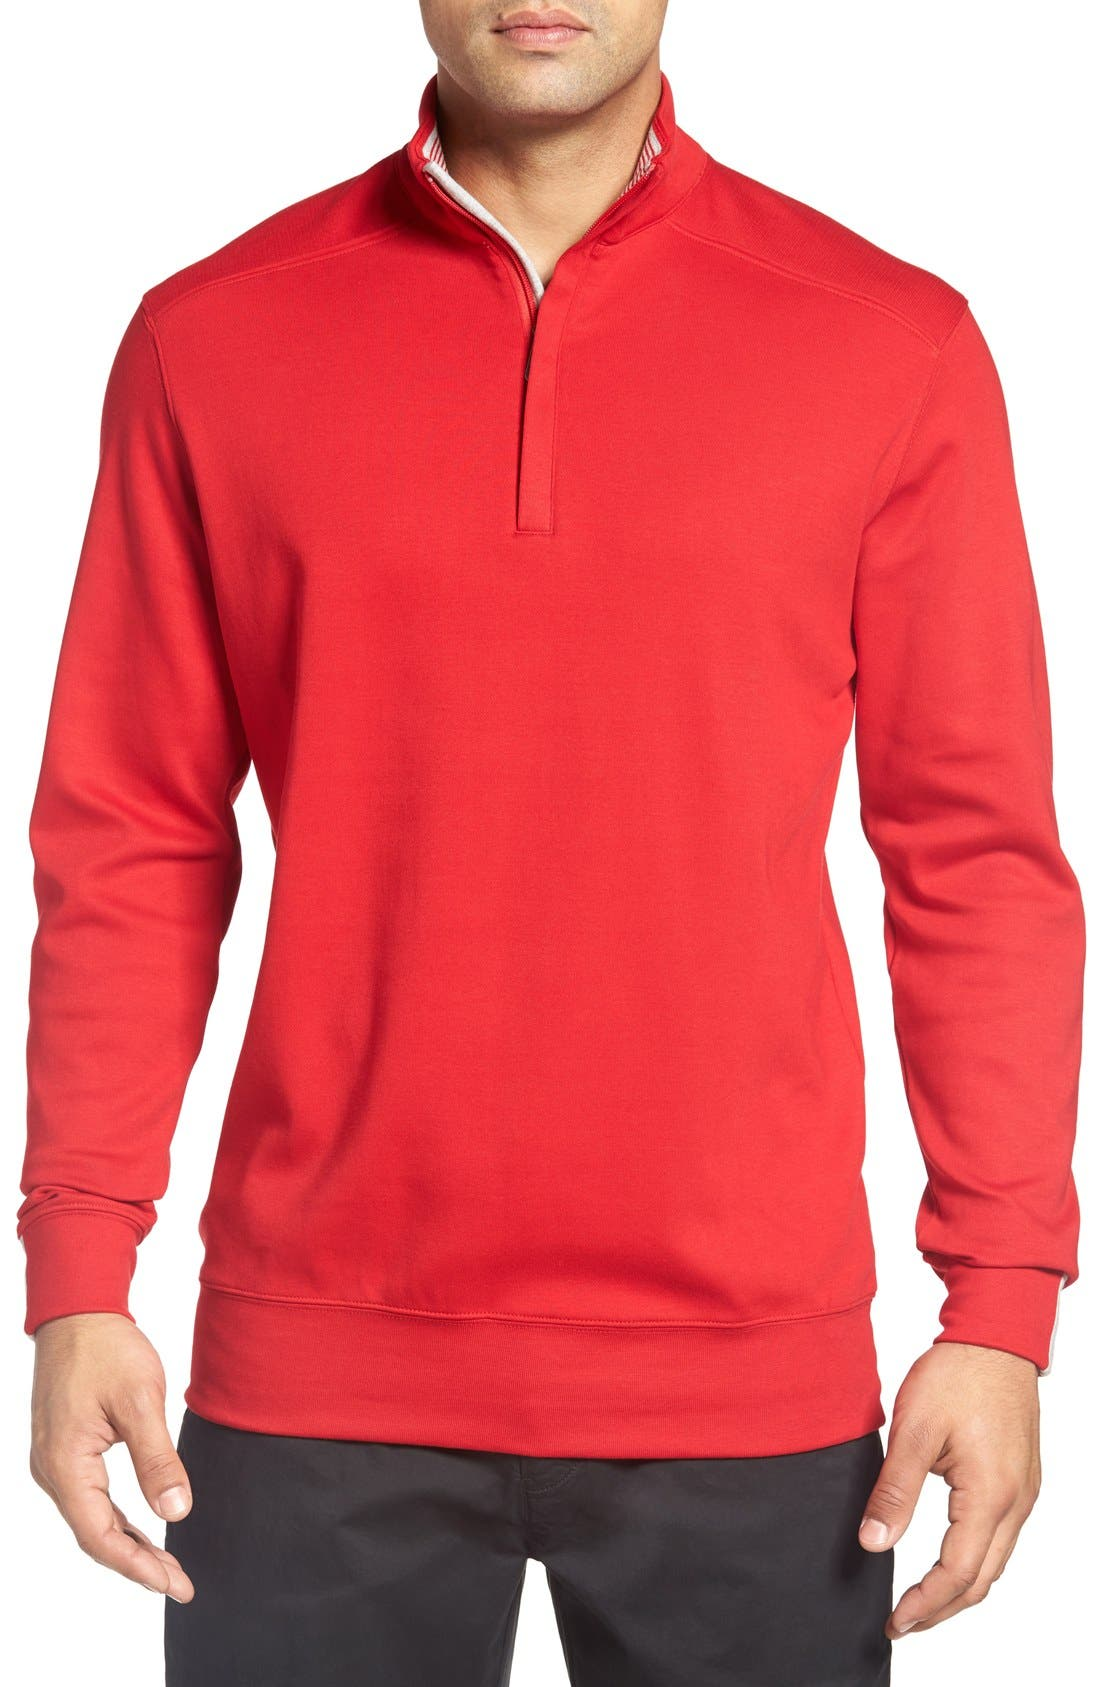 Bobby Jones 'New Leaderboard' Quarter Zip Pullover